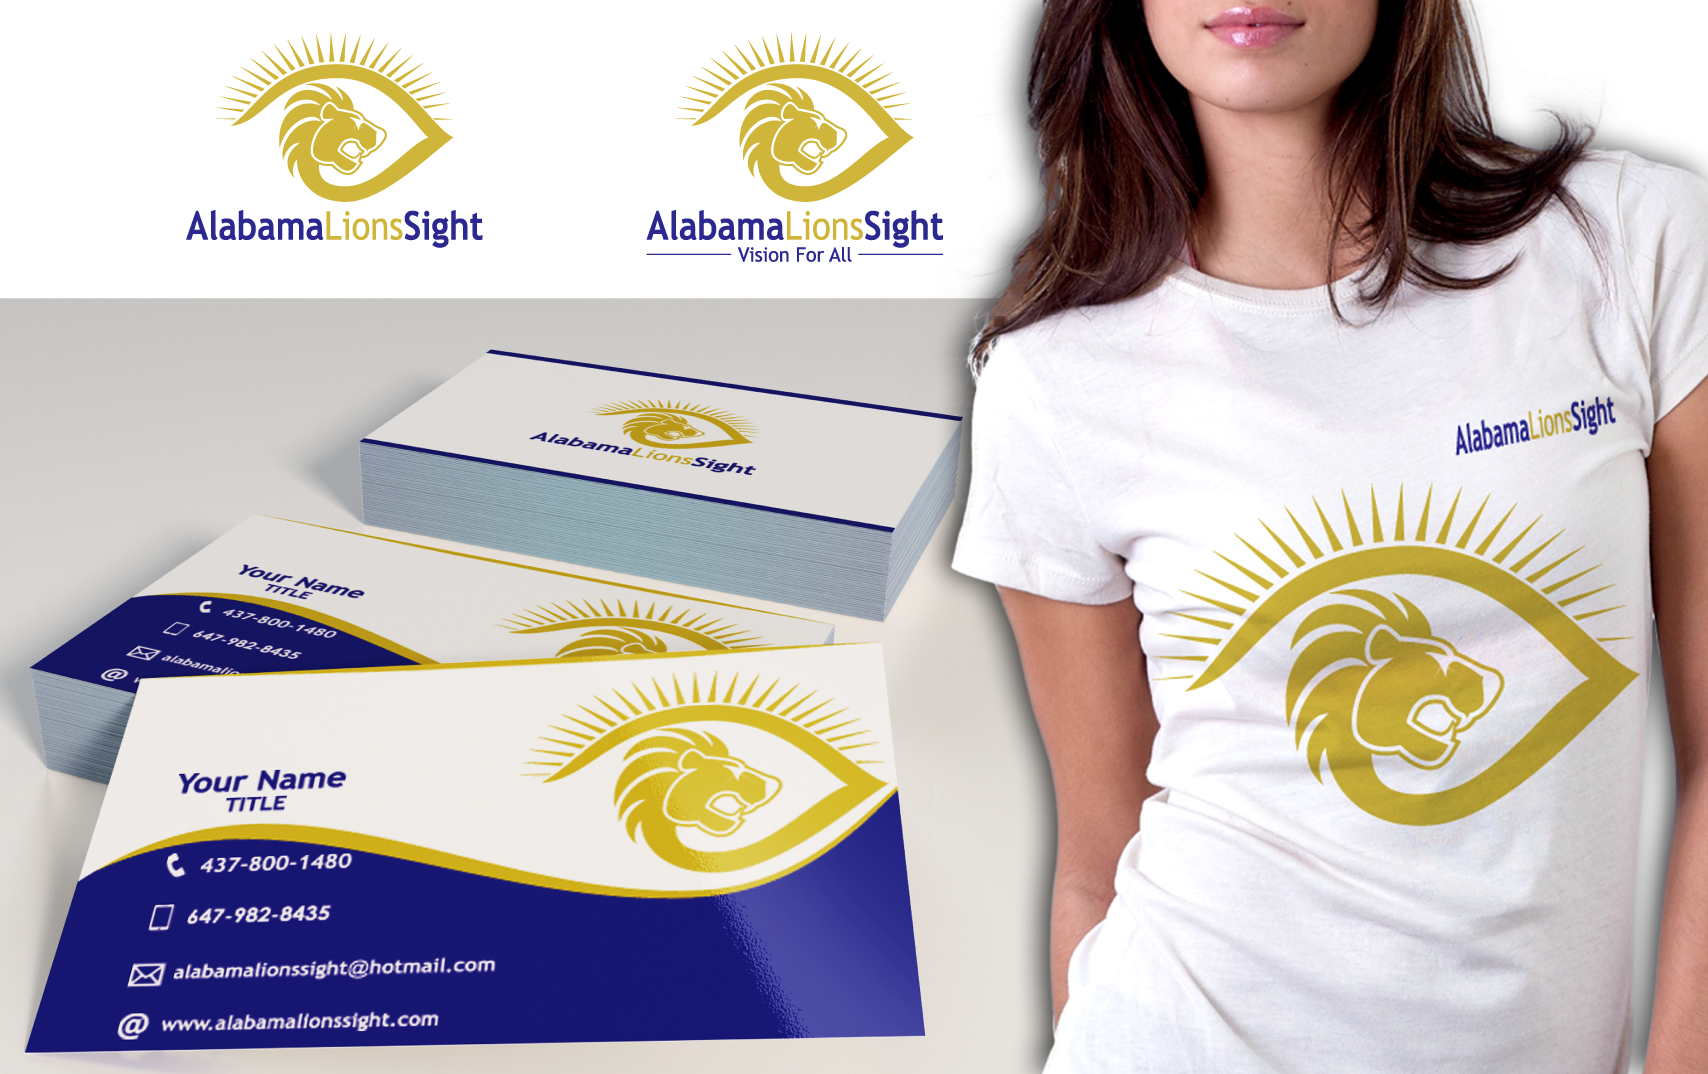 Create a logo that captures a nonprofit's mission of sight restoration, research and education